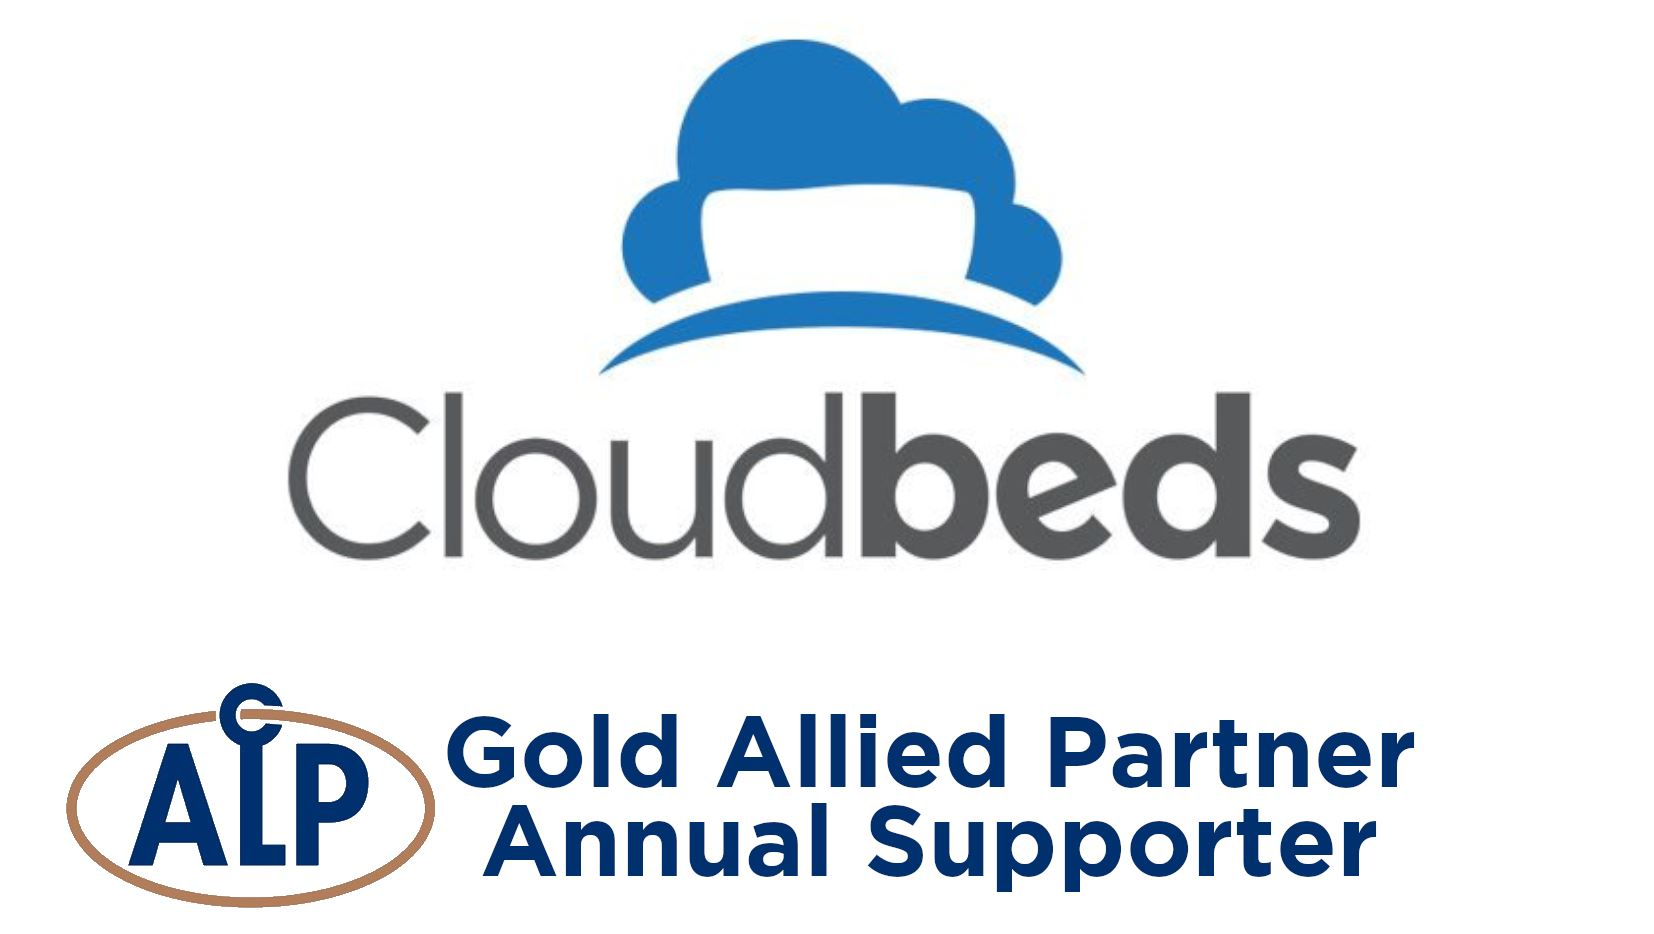 Cloudbeds Logo and Sponsorship